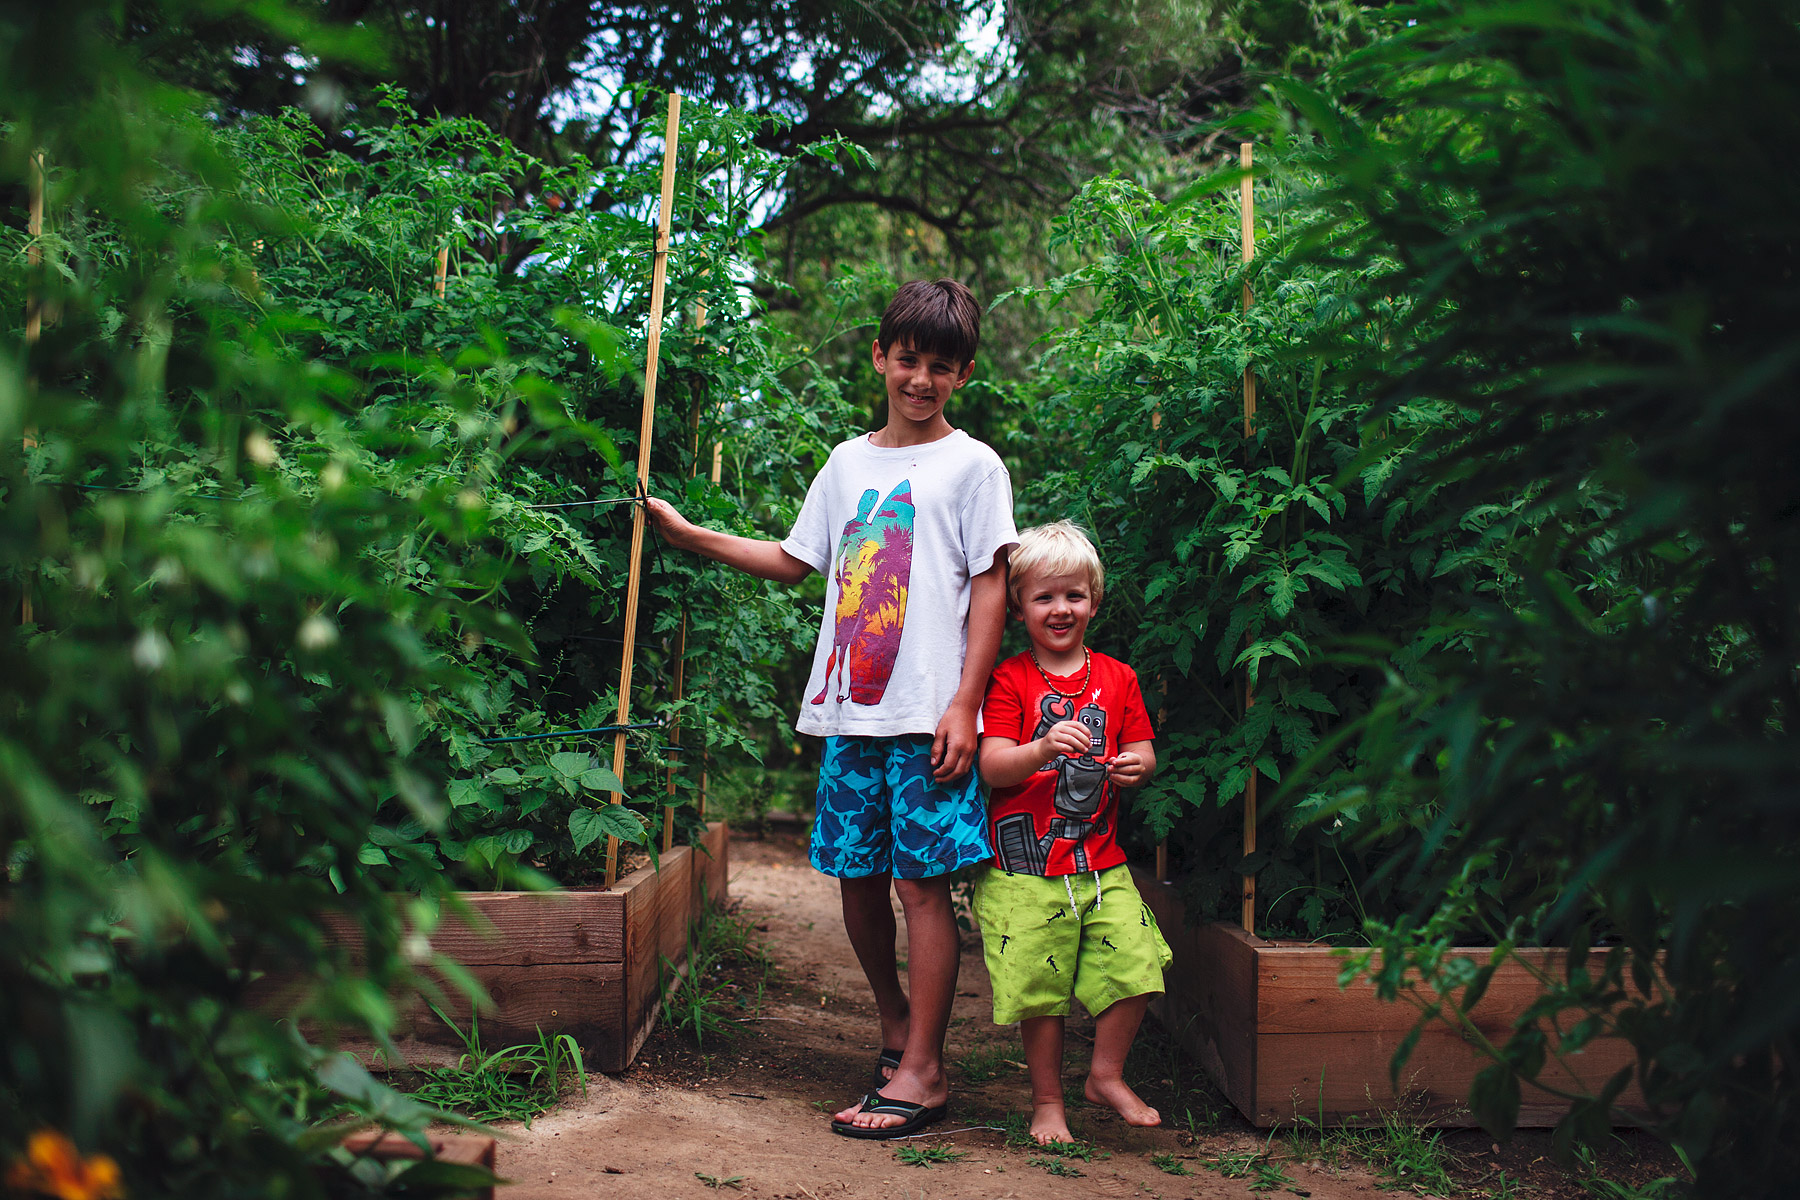 Hanging out in the organic garden